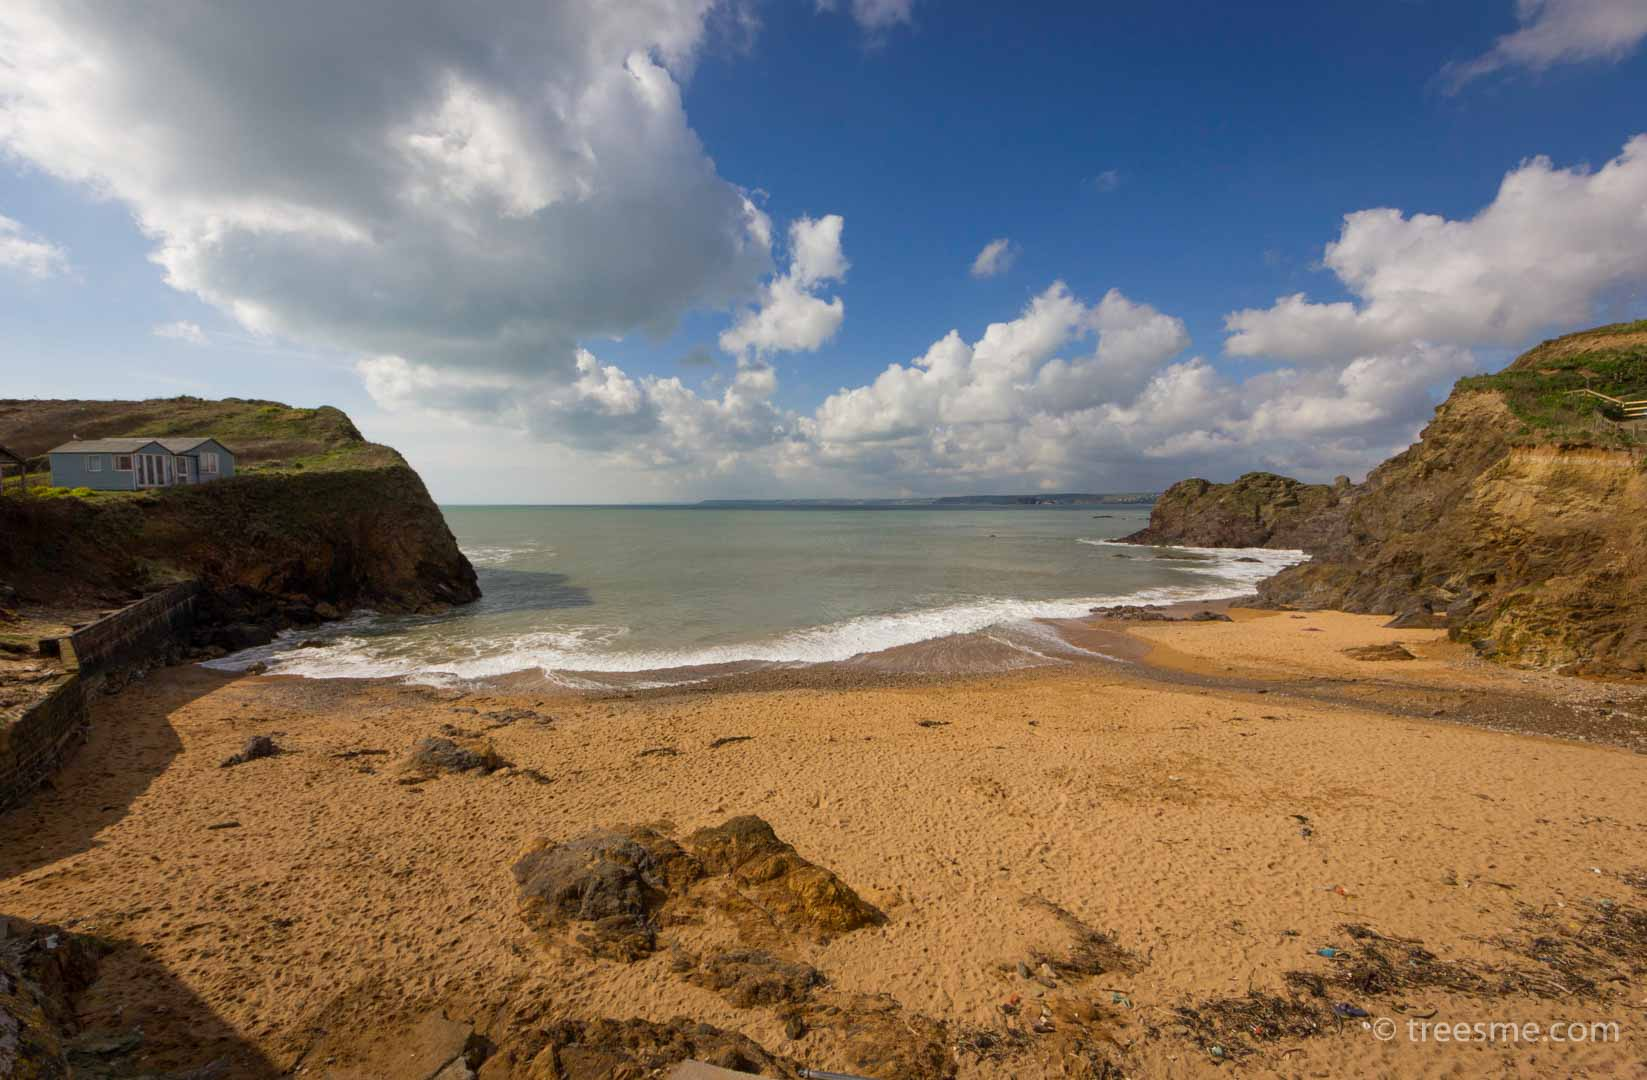 The smaller beach (Mouthwell Sands) at Hope Cove, Devon, England